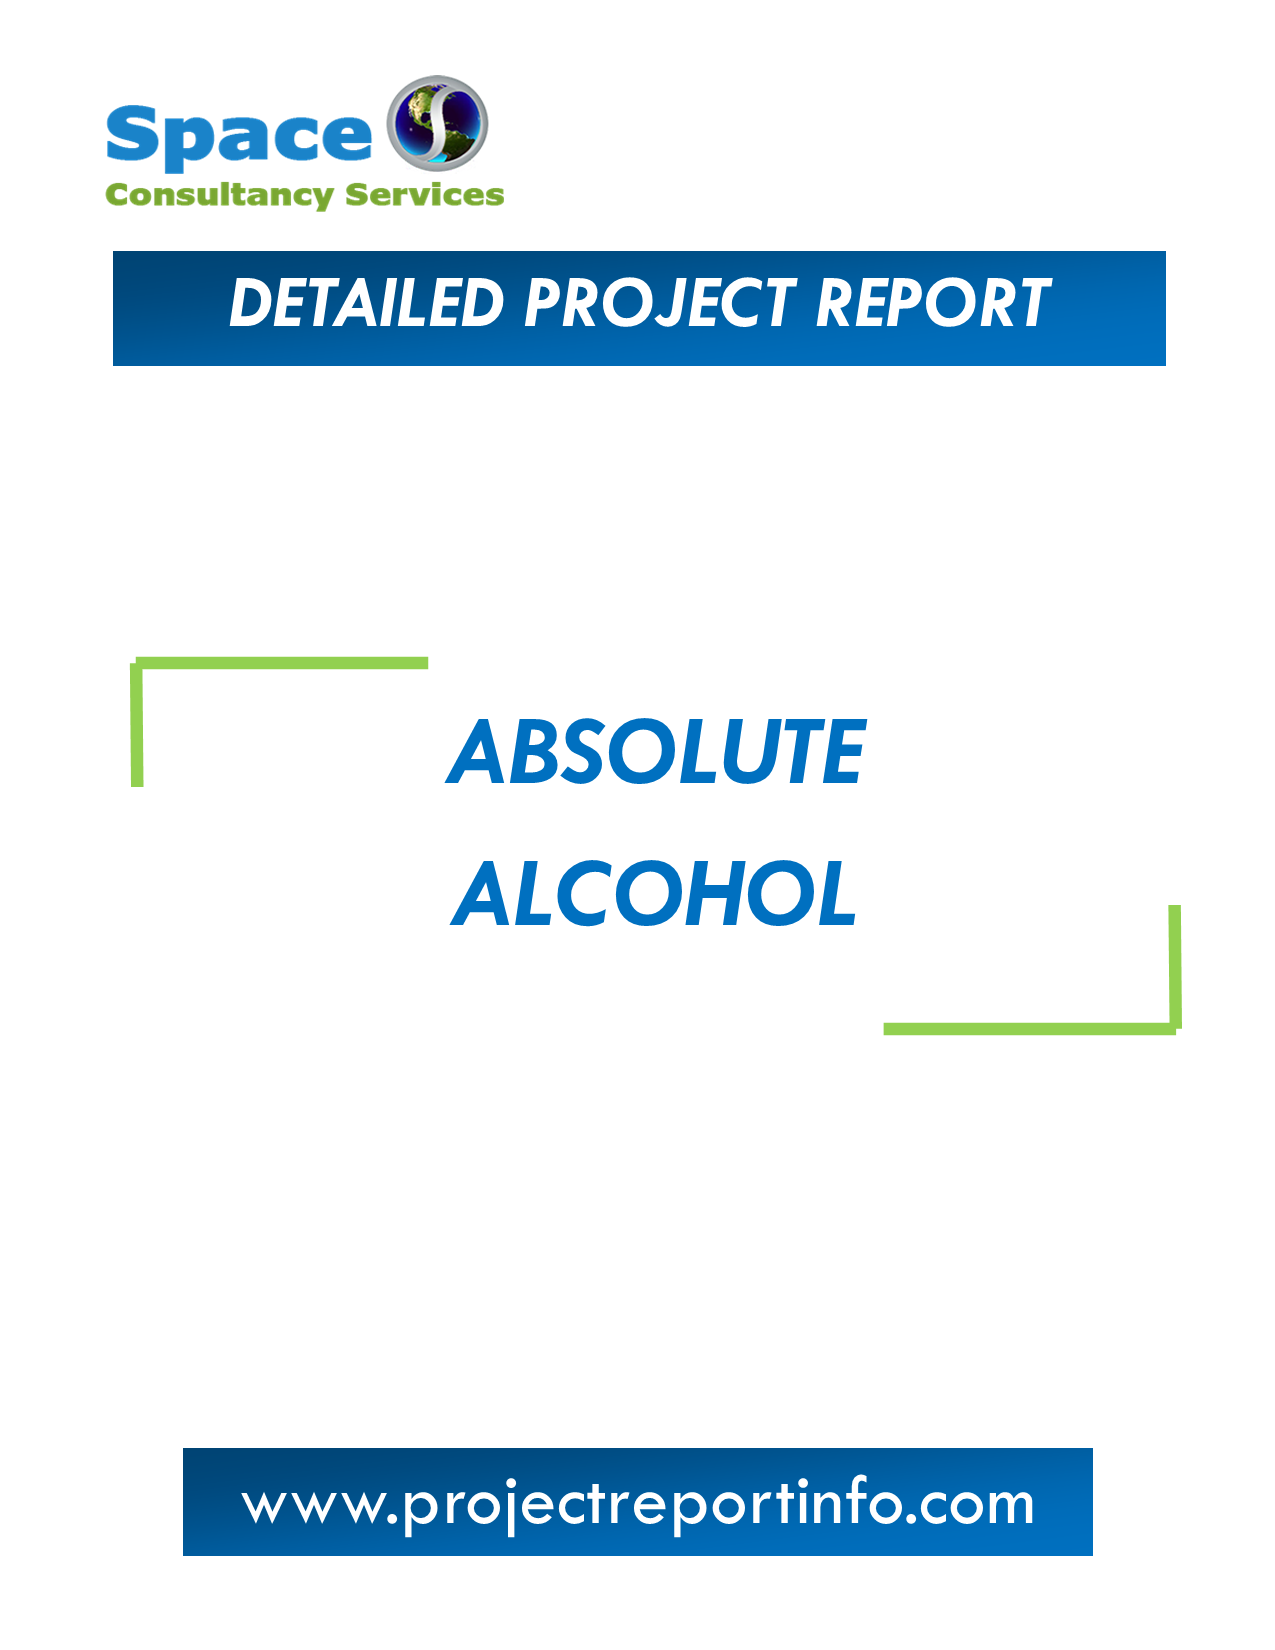 Project Report on Absolute Alcohol Plant